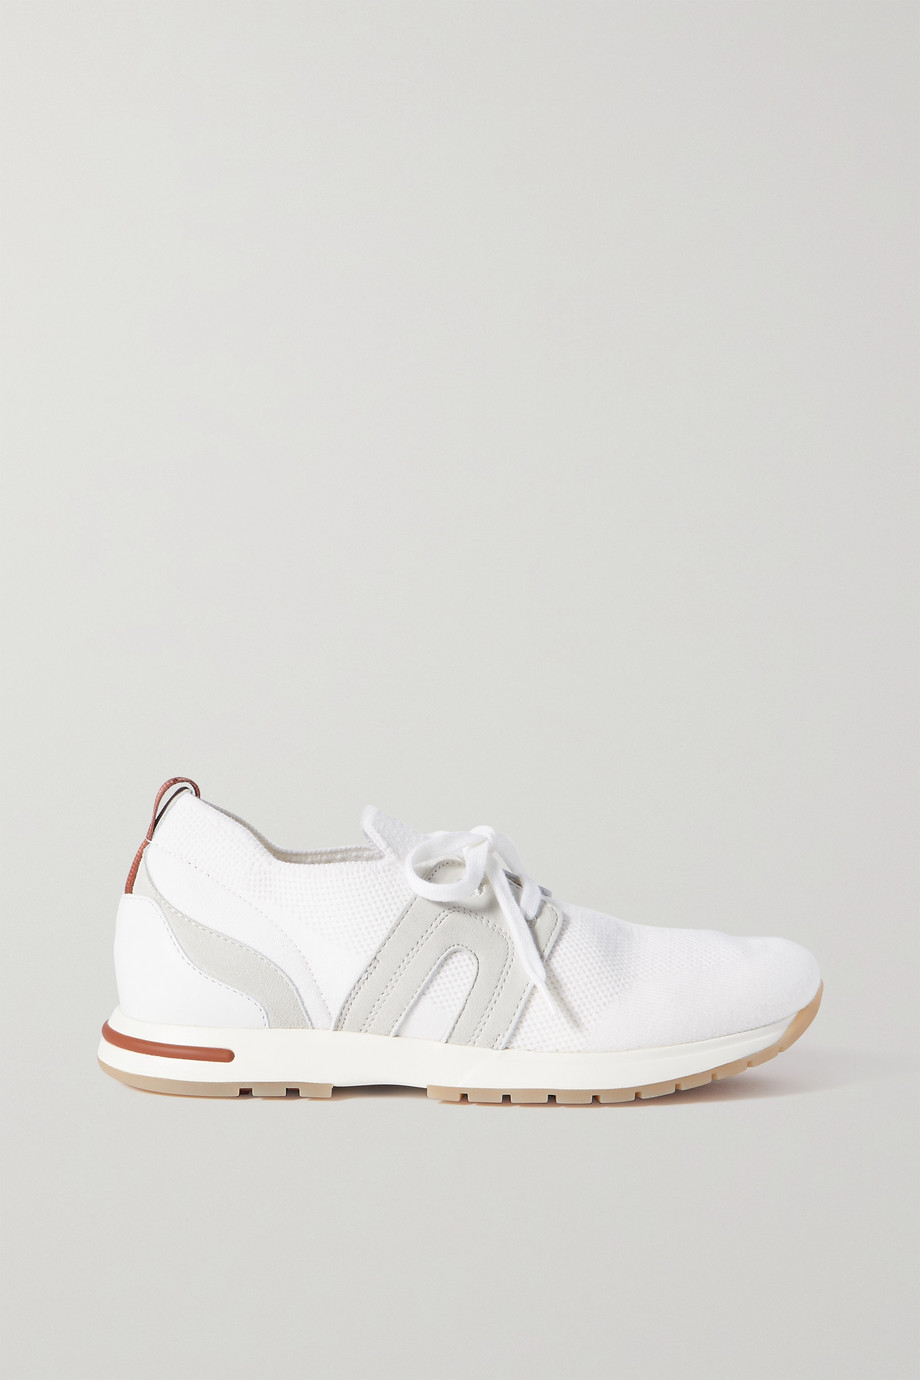 LORO PIANA Flexy Lady cashmere and suede sneakers